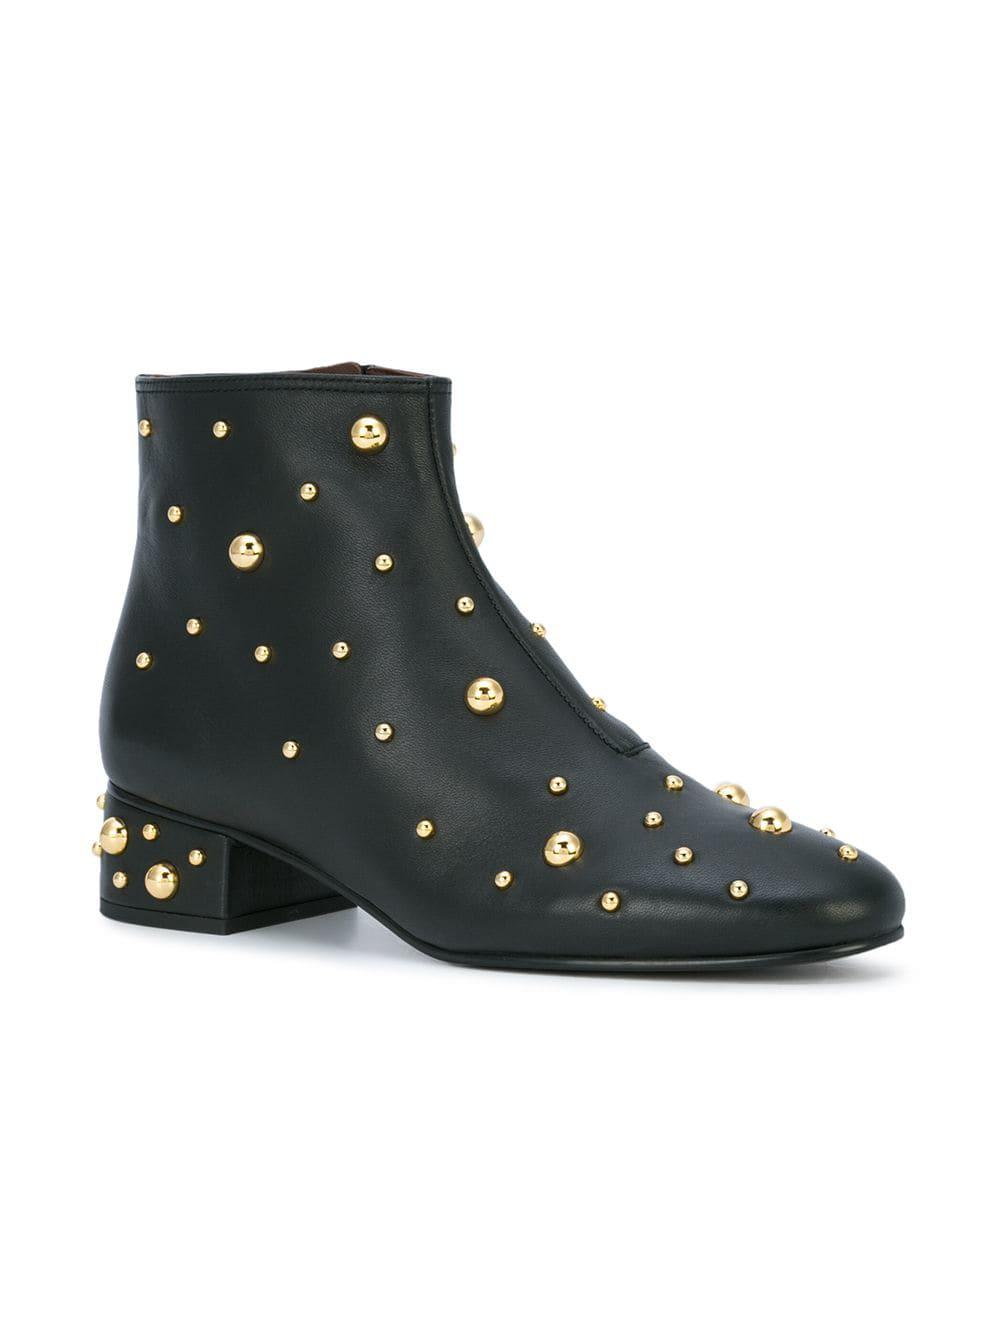 See By Chloé Abby Ankle Boots in Nero